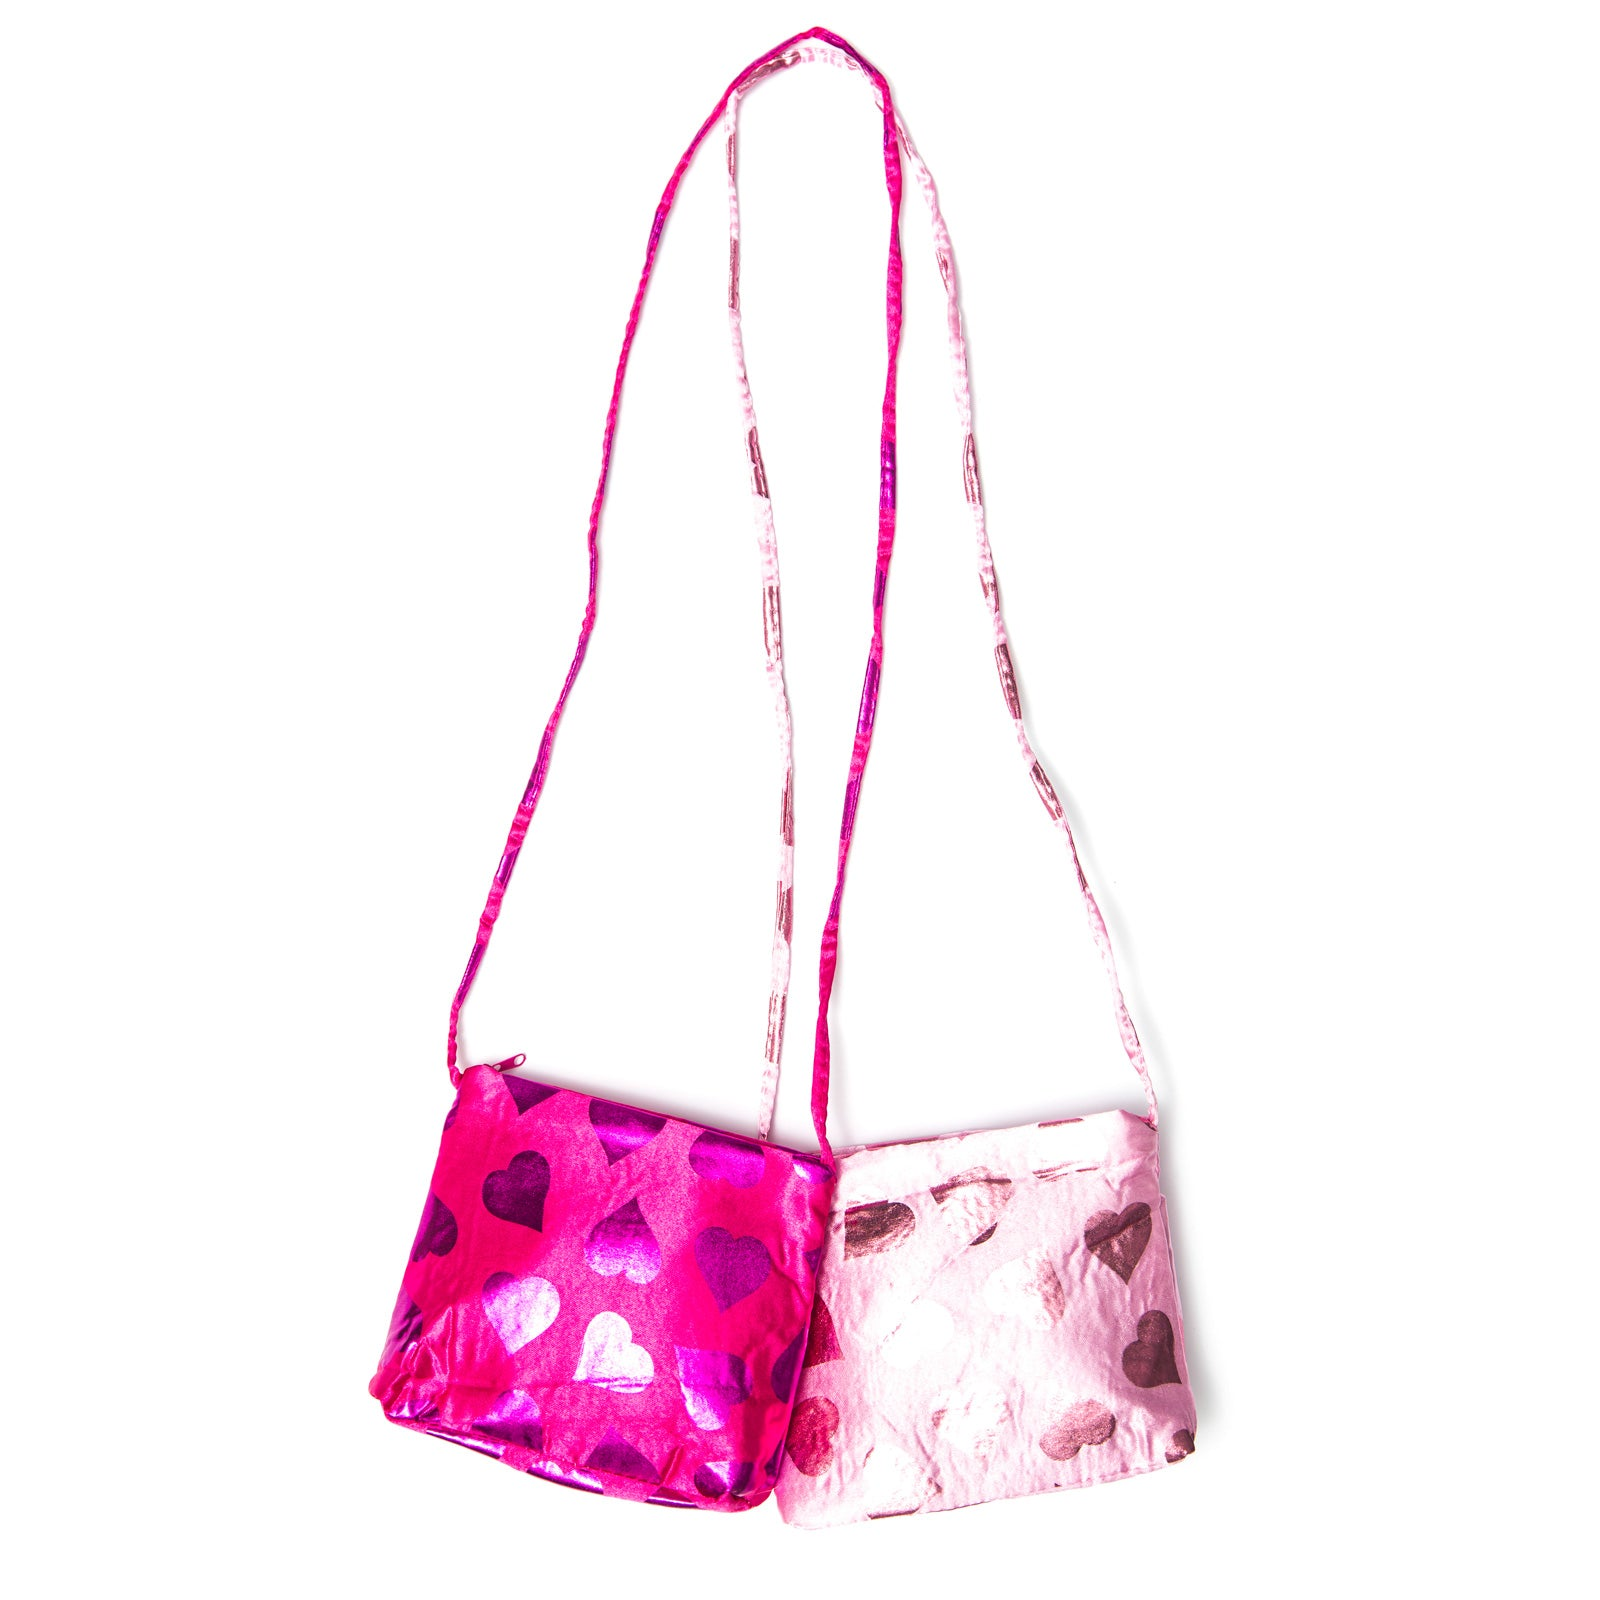 Hearts bag long strap